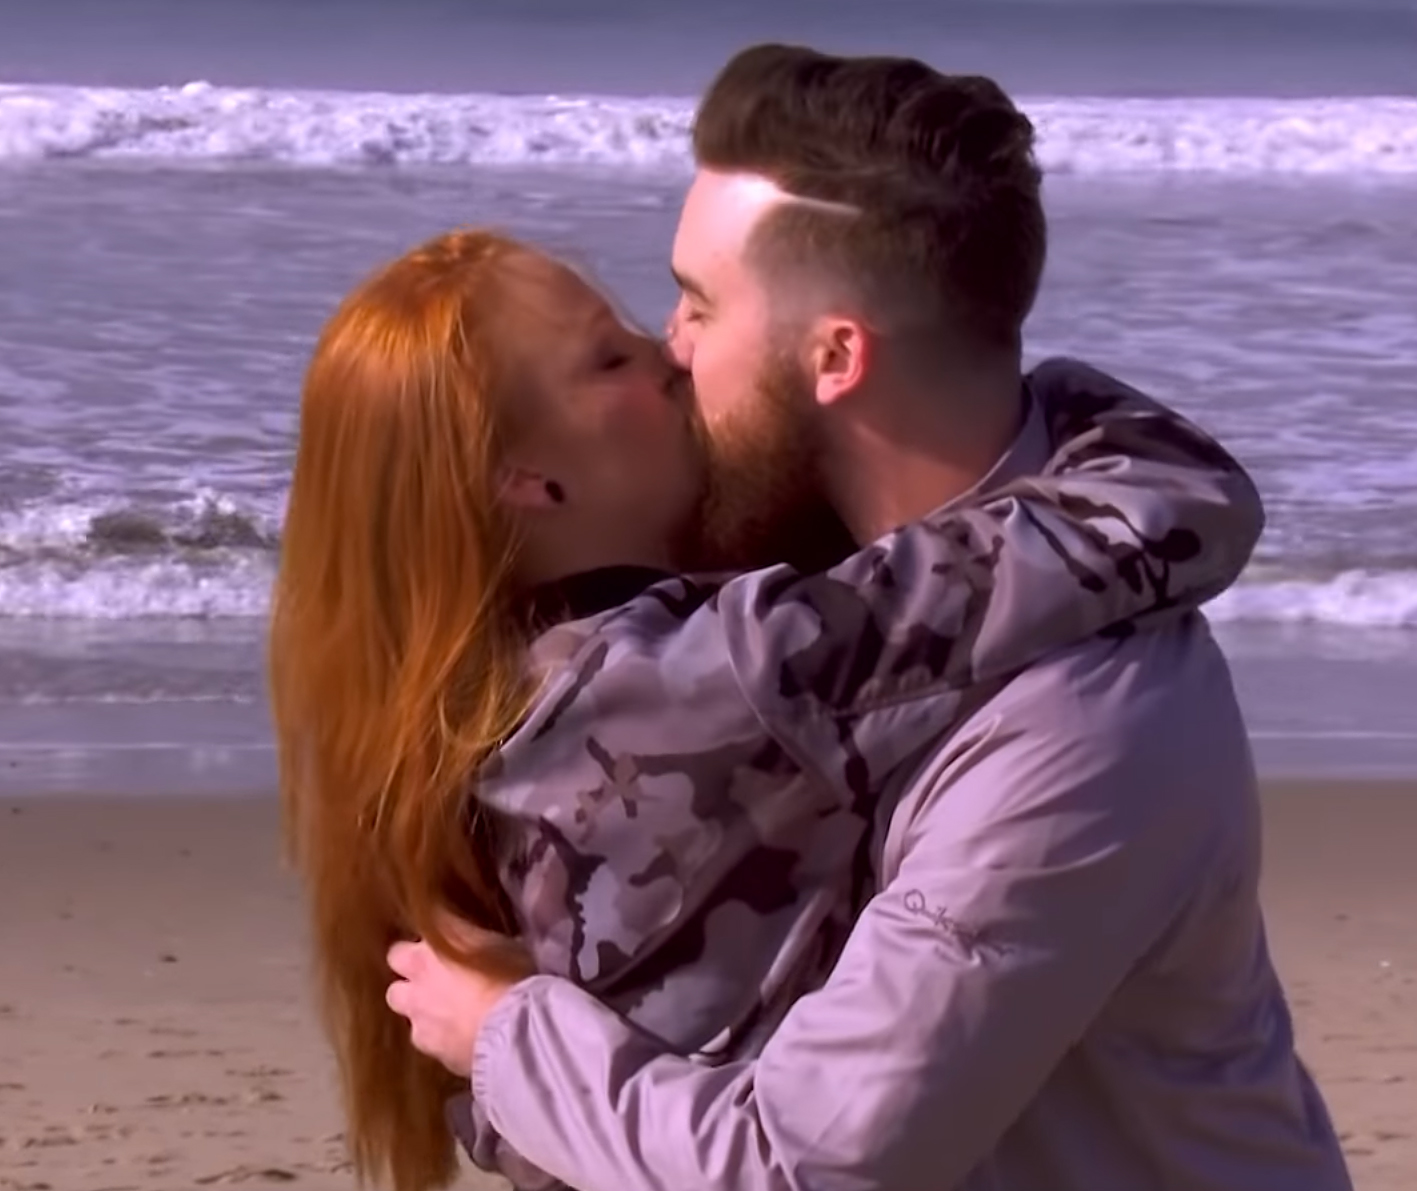 """6-Maci-Bookout-and-Taylor-McKinney-engaged - Taylor popped the question on the beach in Los Angles in January 2016. """"Well y'all, my best friend asked me to marry him! I'm one lucky lady, I love you T!"""""""